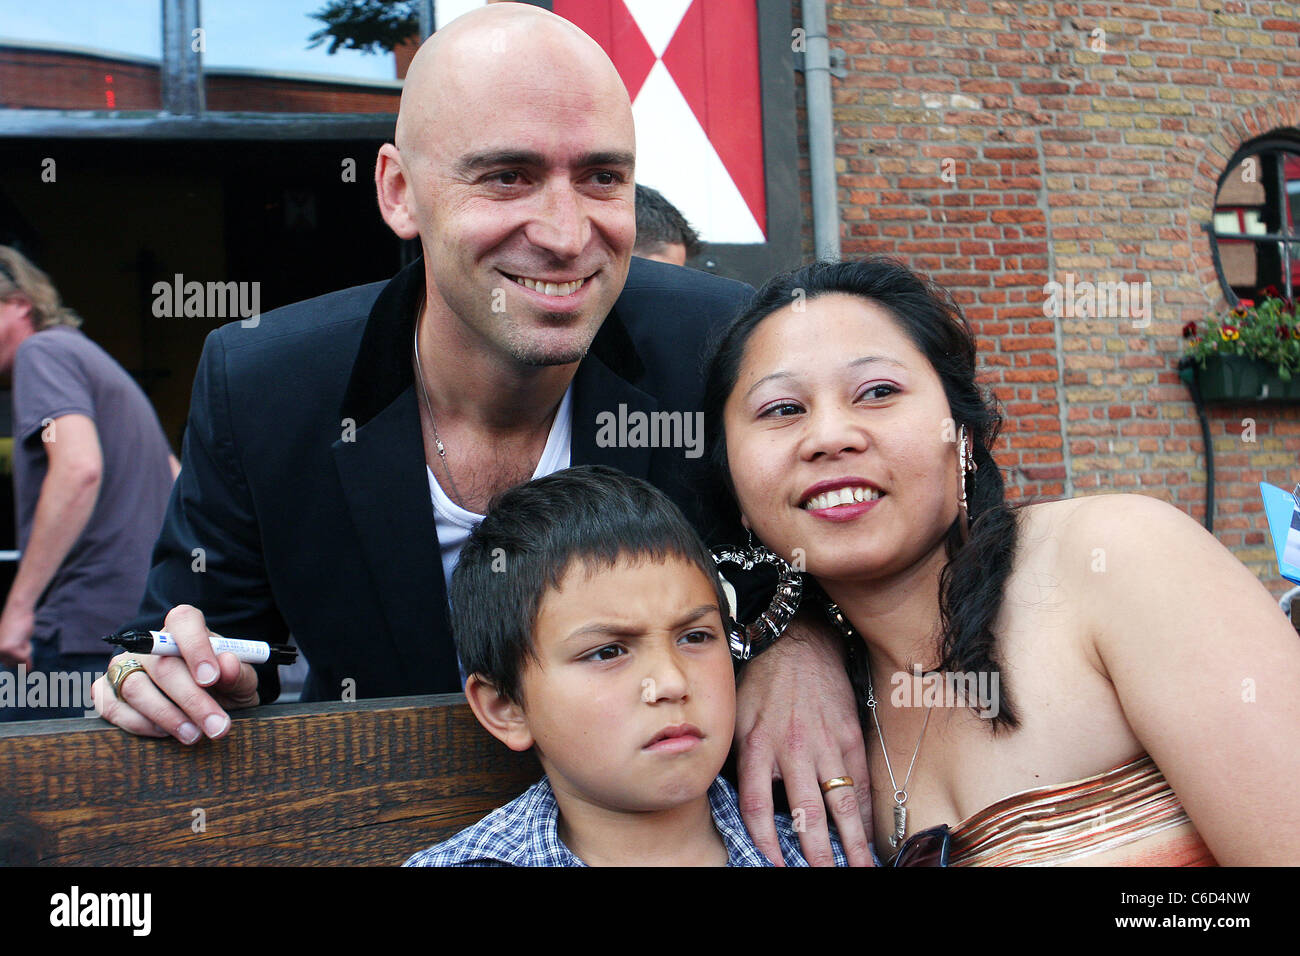 Ed Kowalczyk signs copies of his debut solo album 'Alive' at